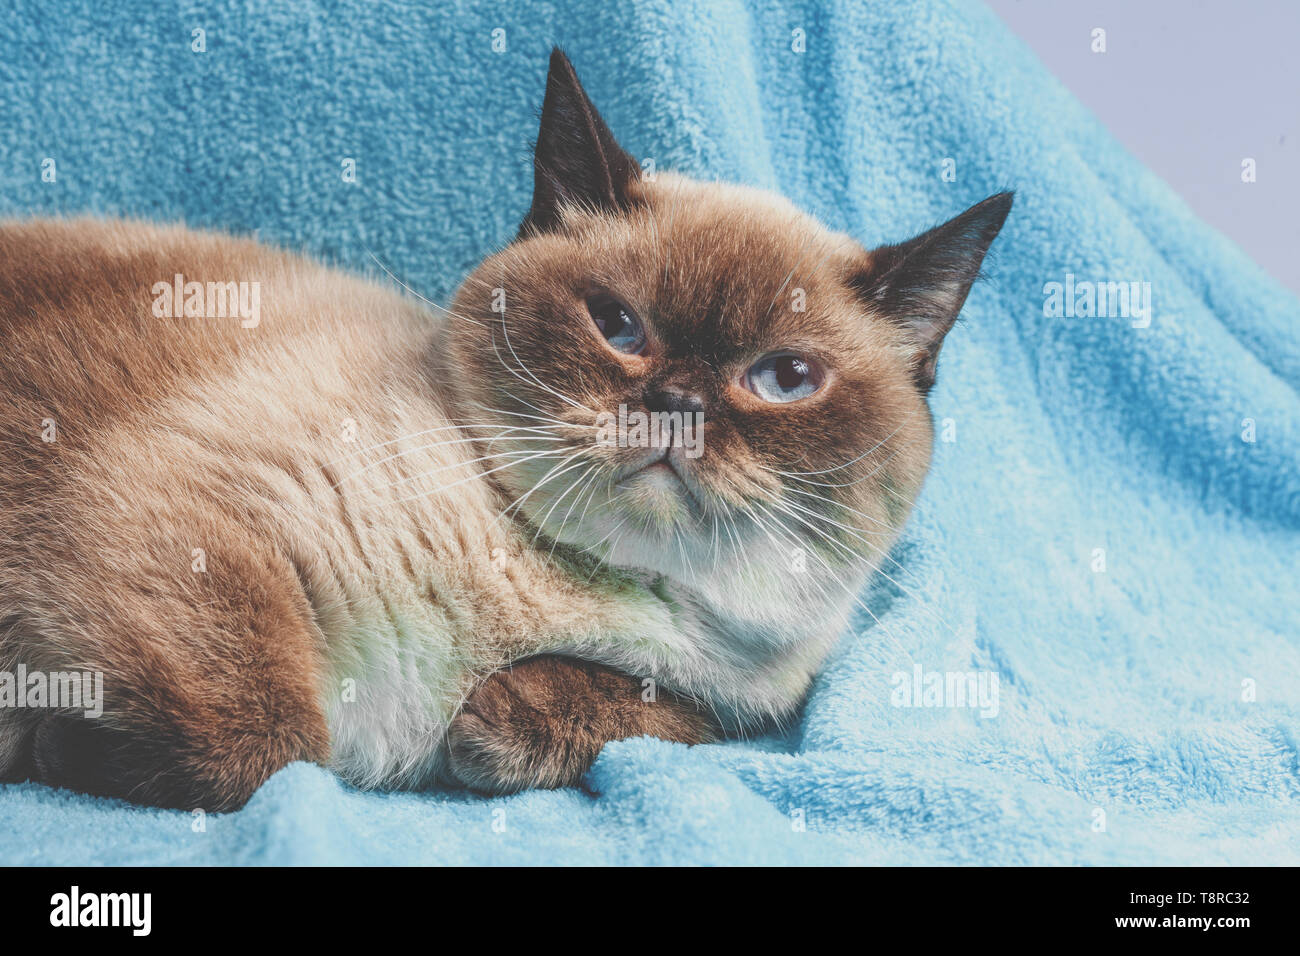 Portrait Of The Colorpoint British Shorthair Cat Stock Photo Alamy